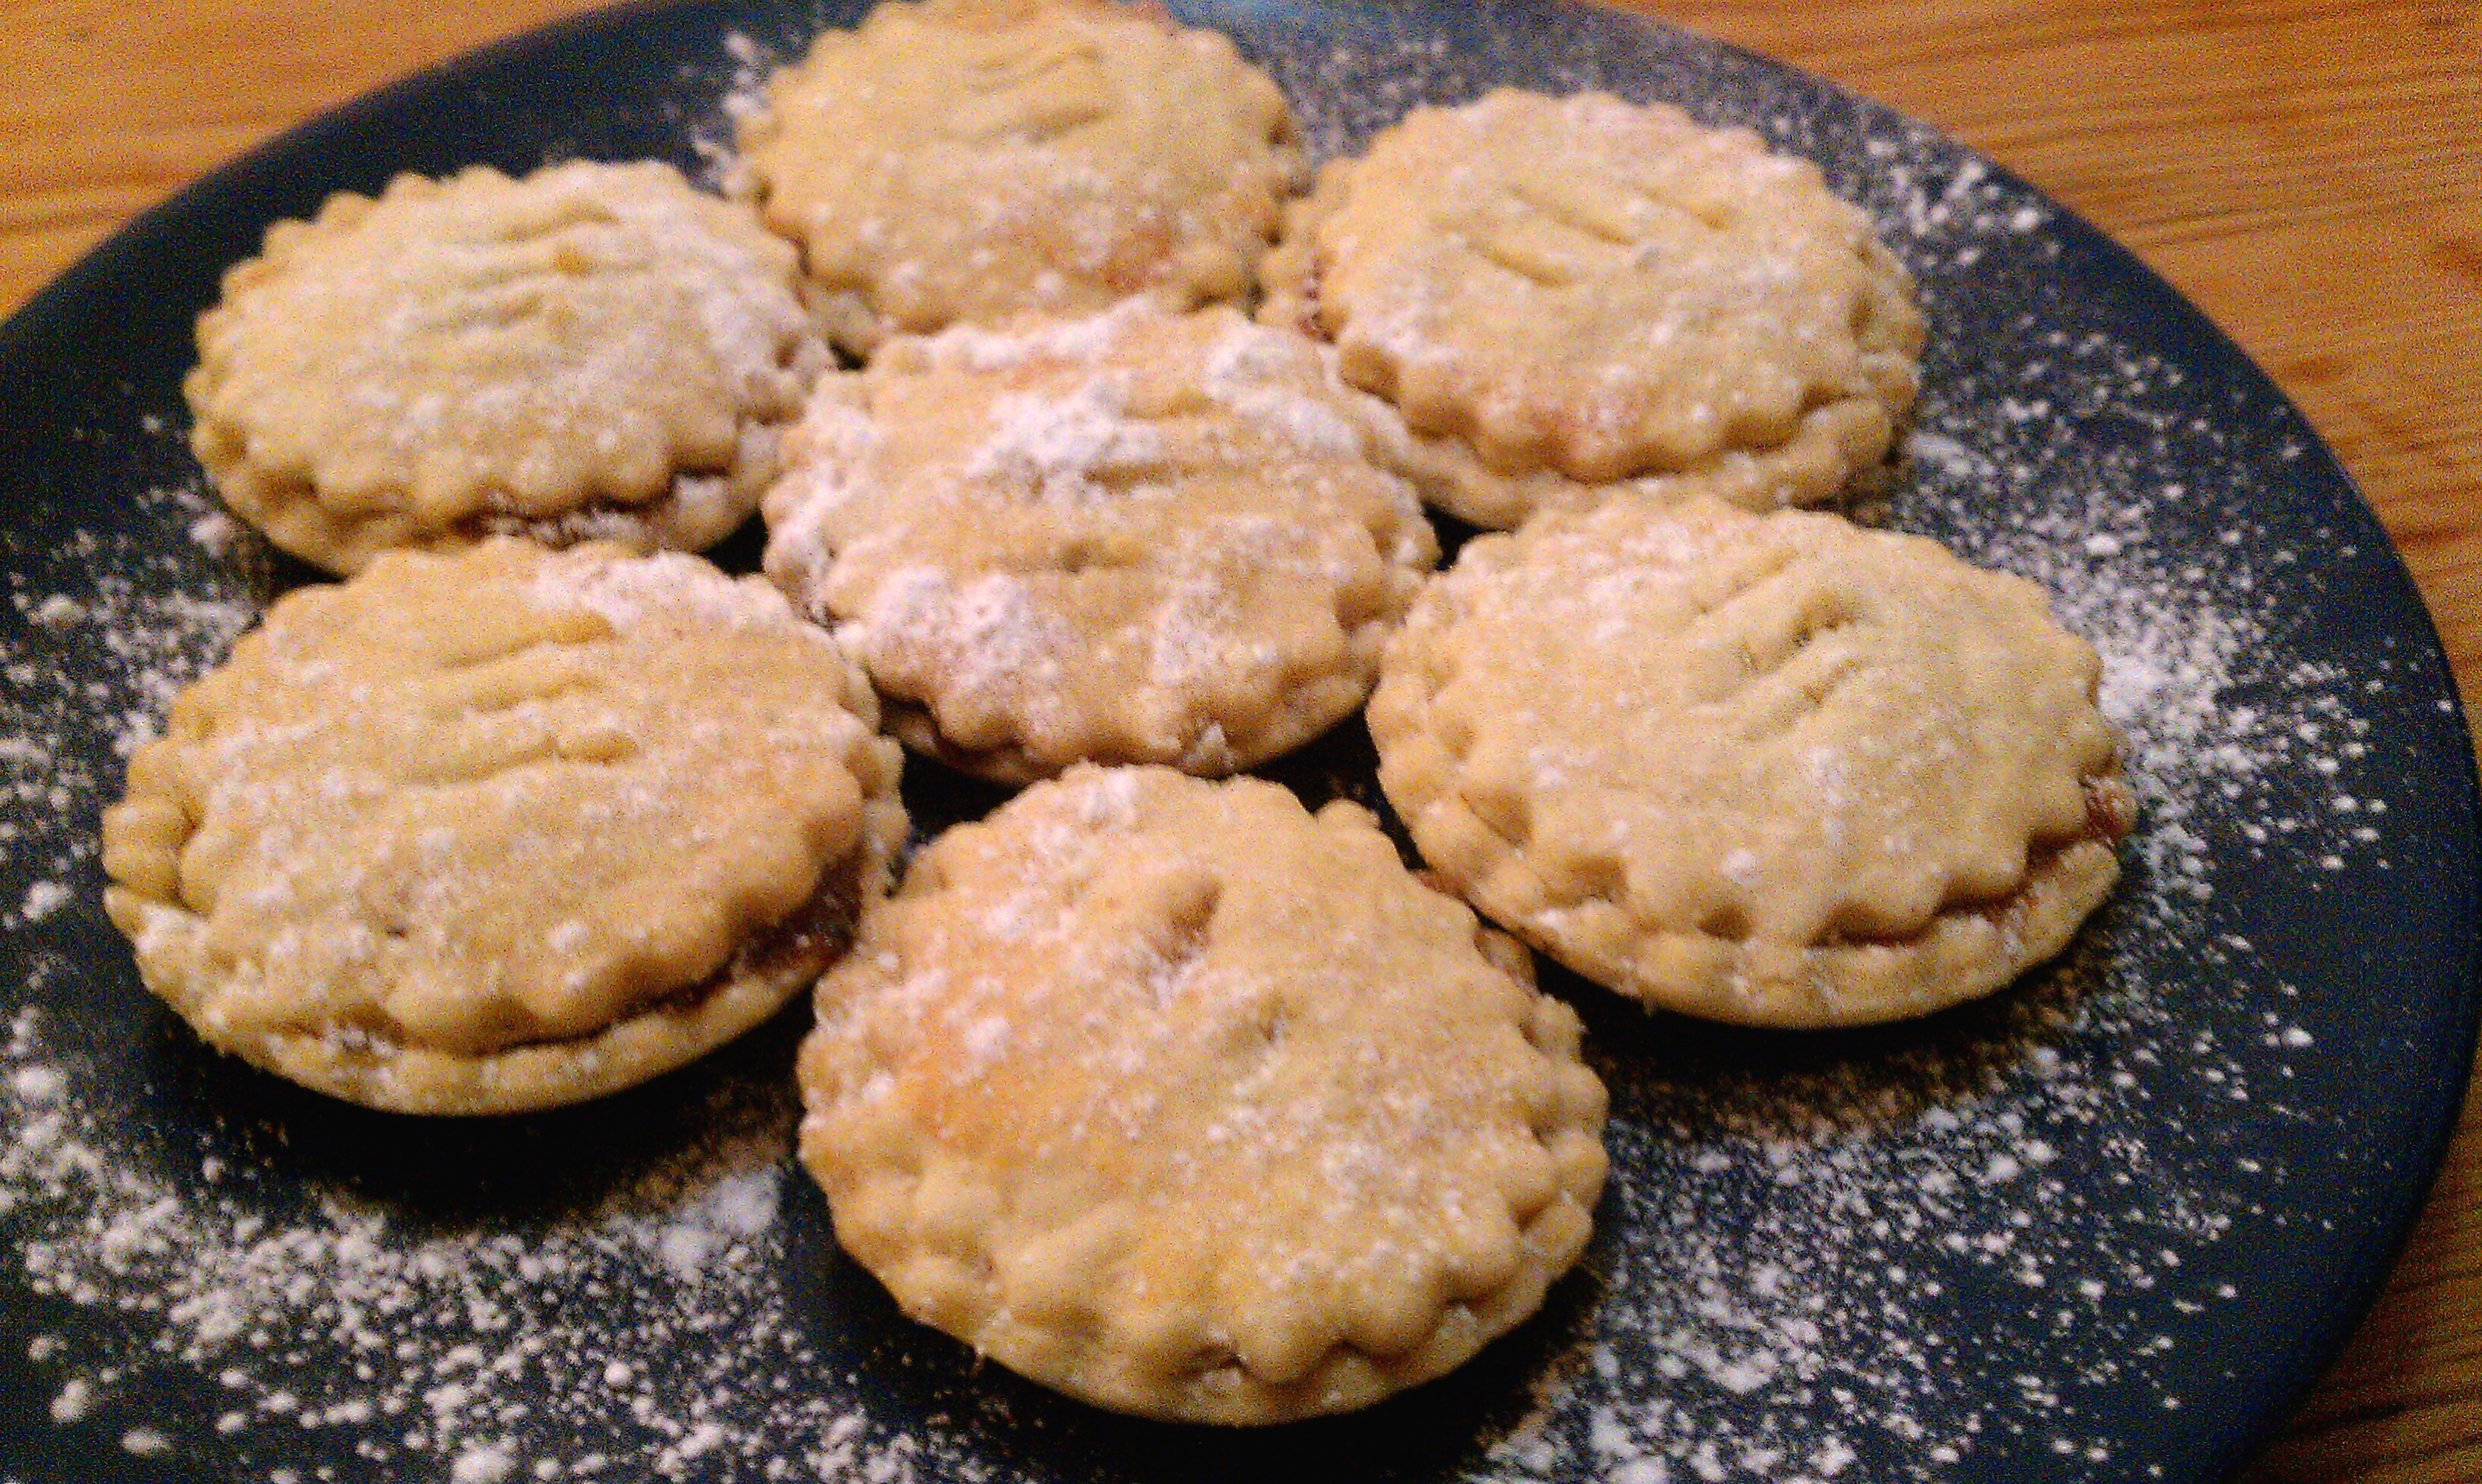 Mince pie recipe reviews: Delia vs BBC Good Food – Cake Takes the ...